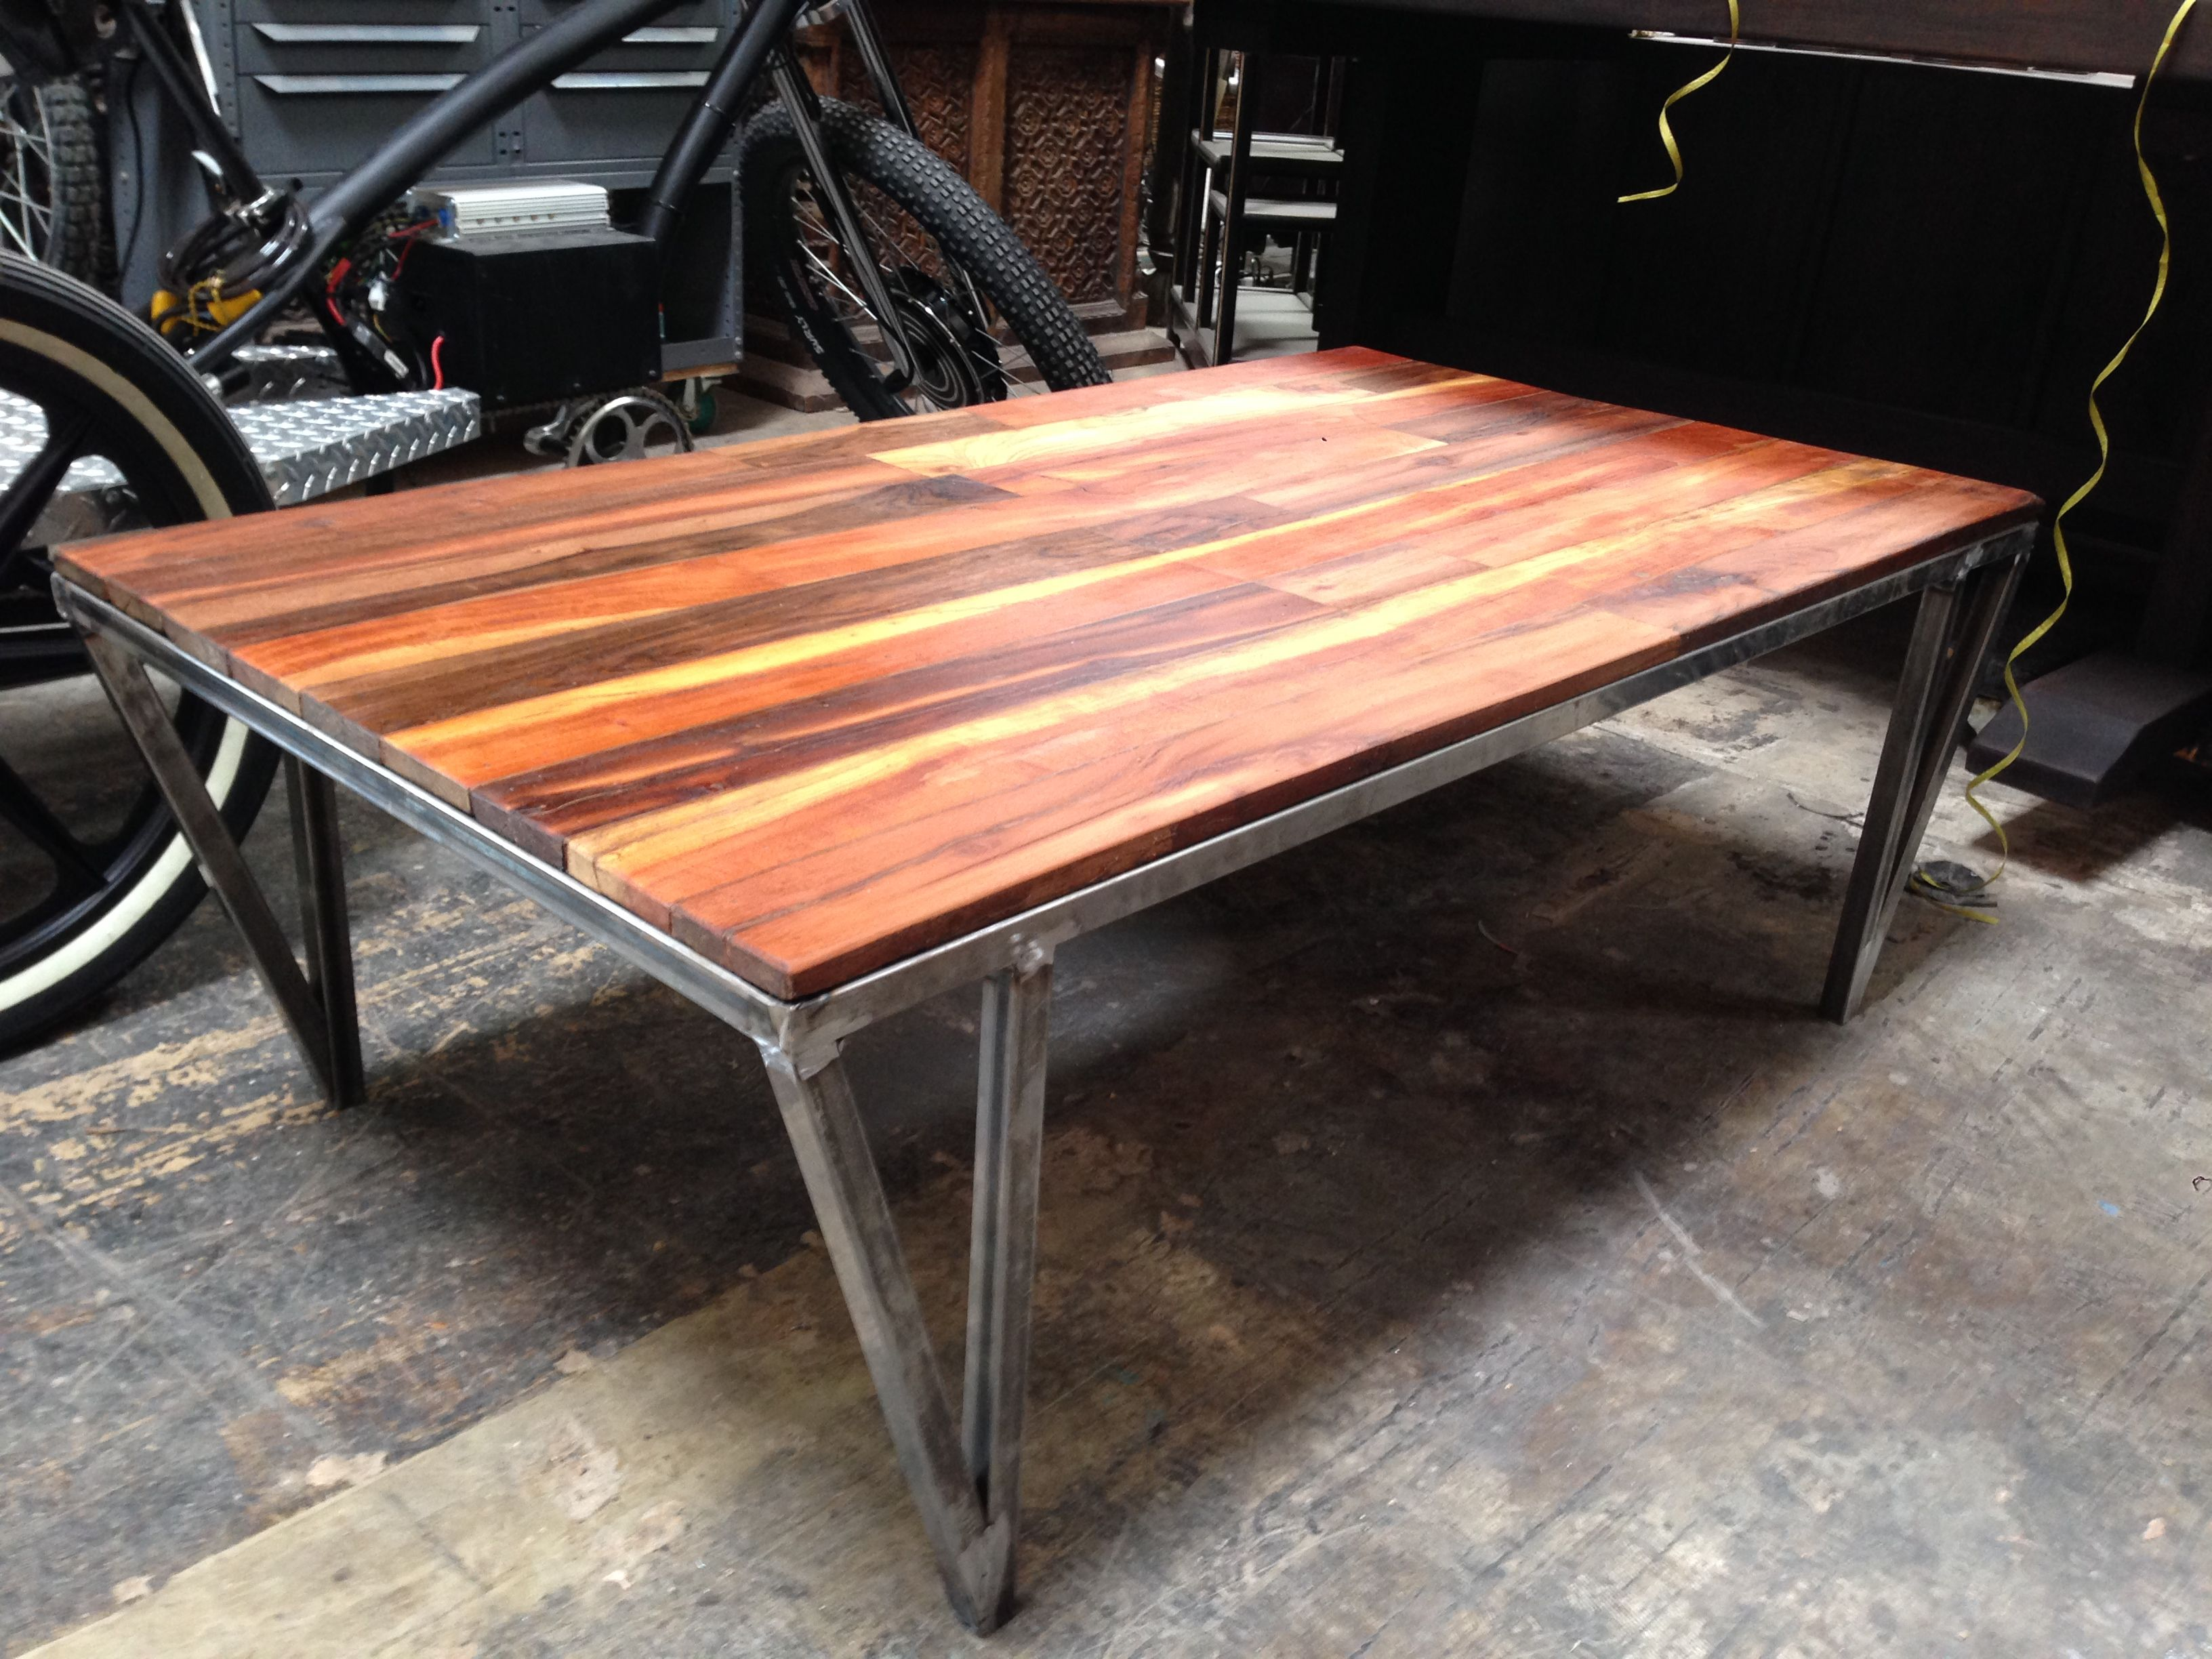 Enchanting Brown Varnished Reclaimed Wood Coffee Table With Iron Base On  Barn Wood Floors As Rustic